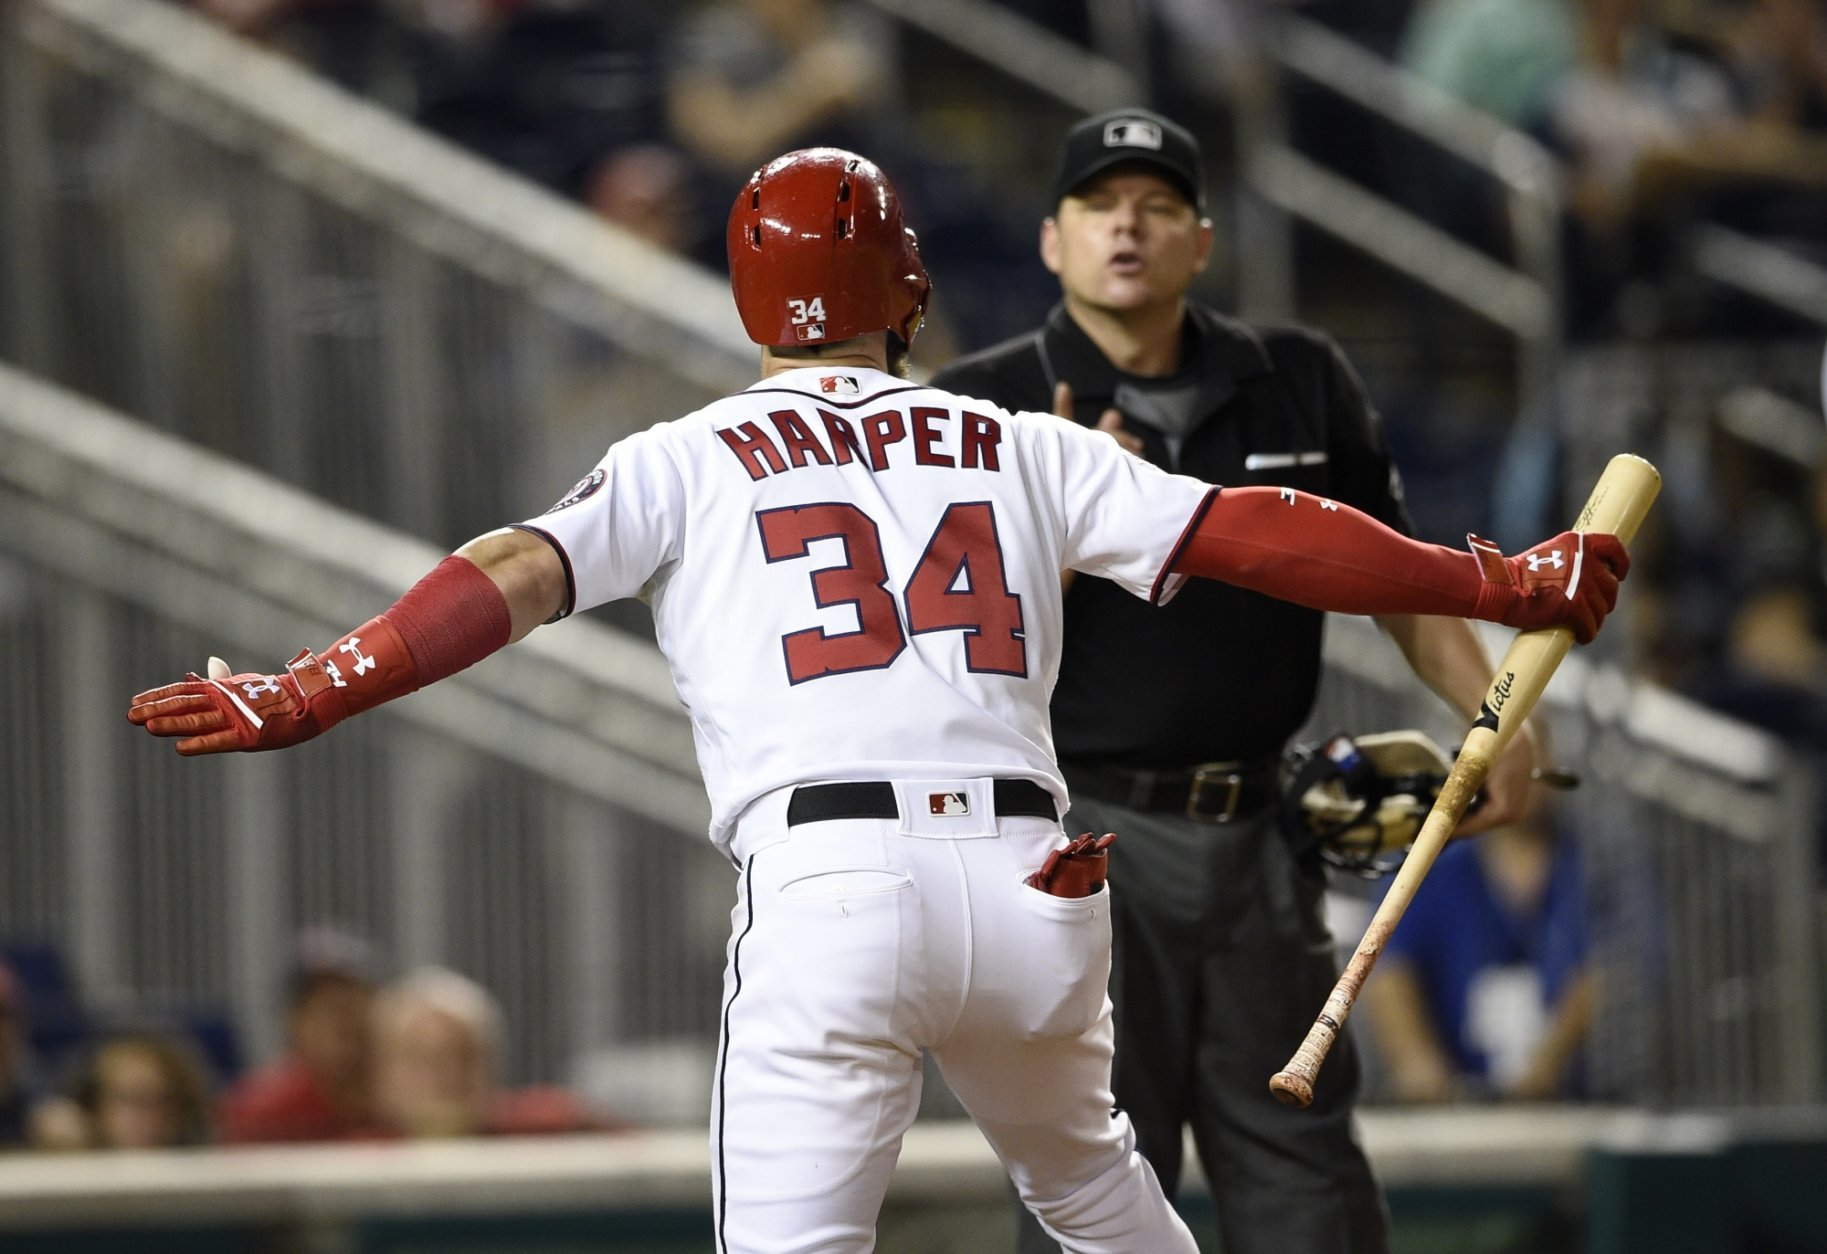 Washington Nationals' Bryce Harper reacts after he was ejected by home plate umpire D.J. Reyburn during the 12th inning of a baseball game against the New York Mets, Thursday, Sept. 20, 2018, in Washington. Harper had been called out on strikes. The Mets won 5-4 in 12 innings. (AP Photo/Nick Wass)